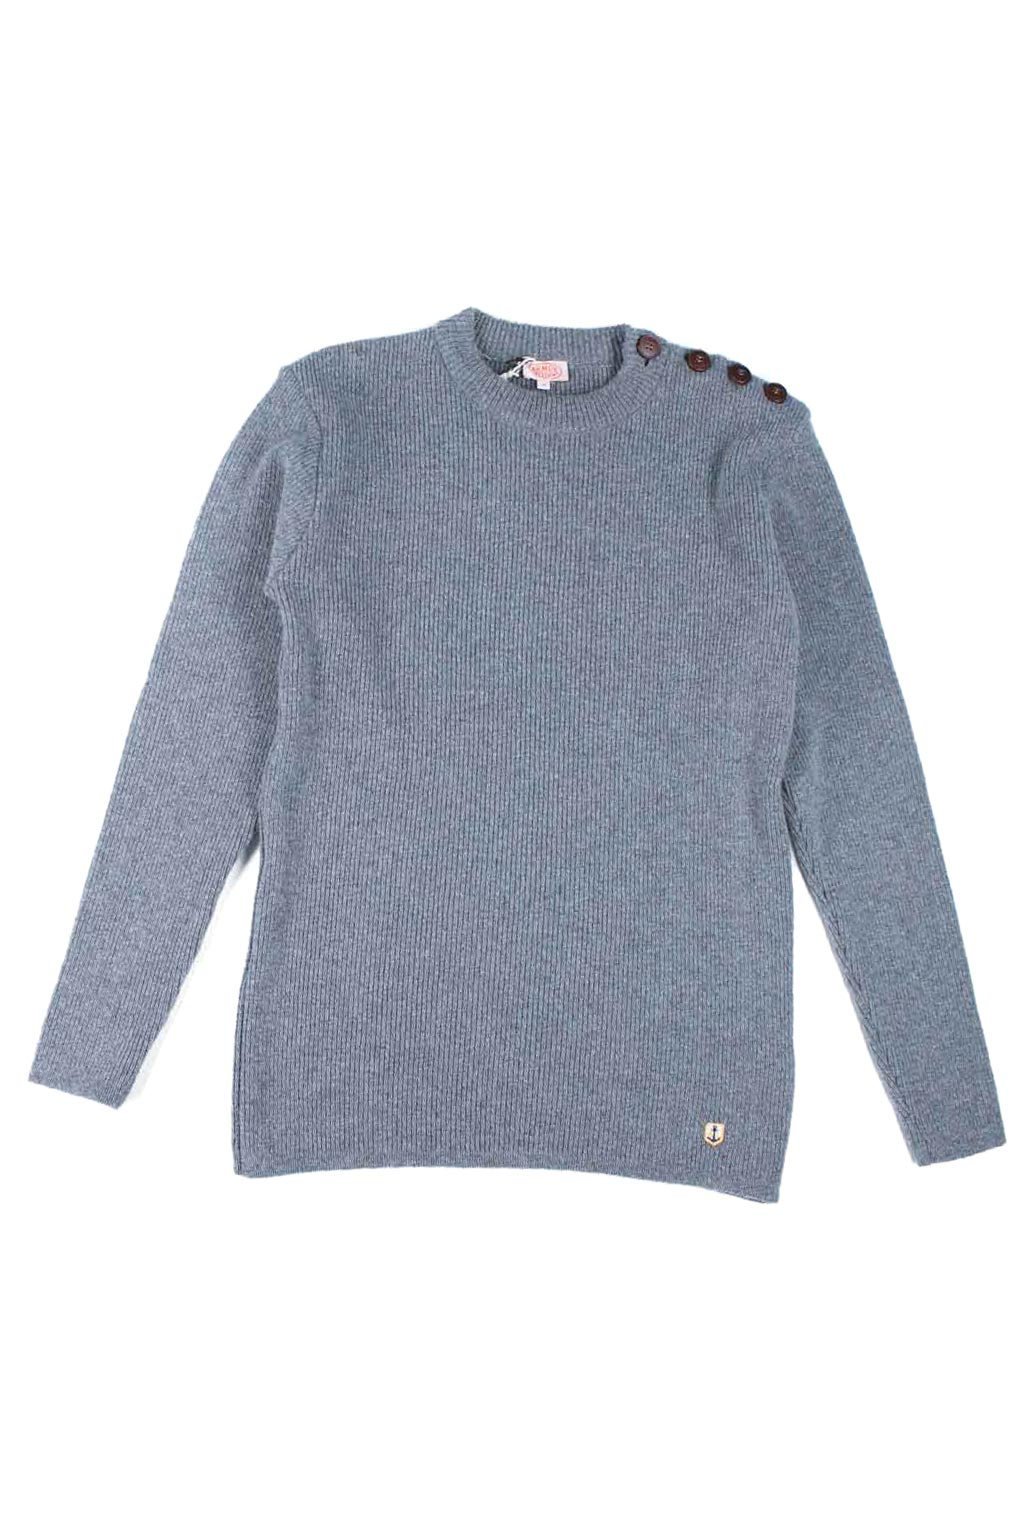 Heritage Sailor Sweater - Slate